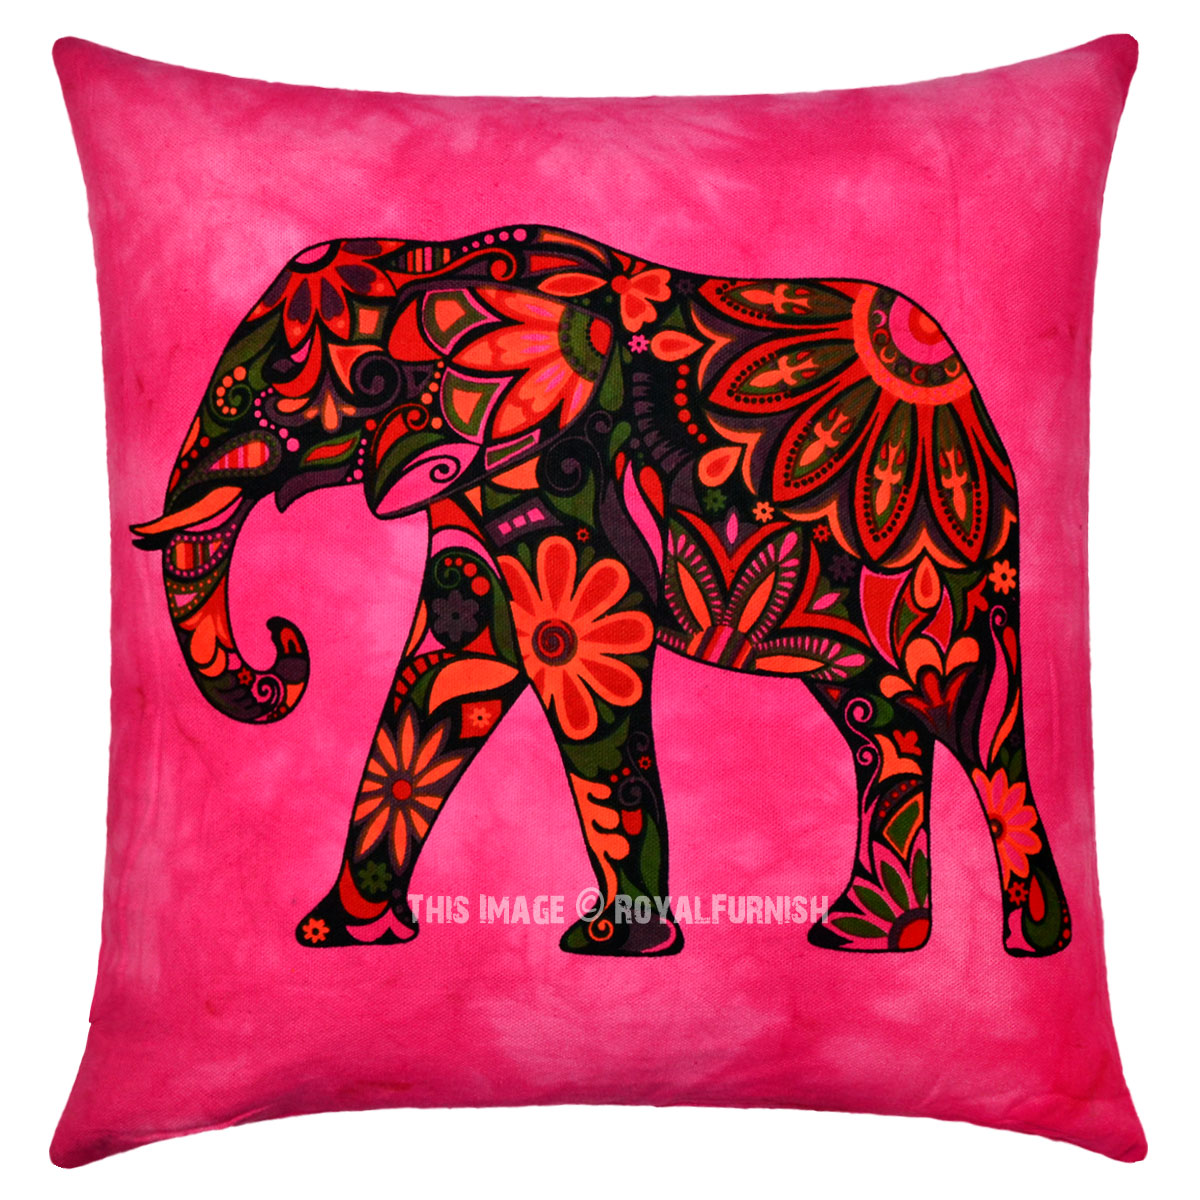 Hippie Floor Pillows : Pink Asian Elephant Tie Dye Hippie Decorative Reversible Pillow Cover 16X16 Inch - RoyalFurnish.com